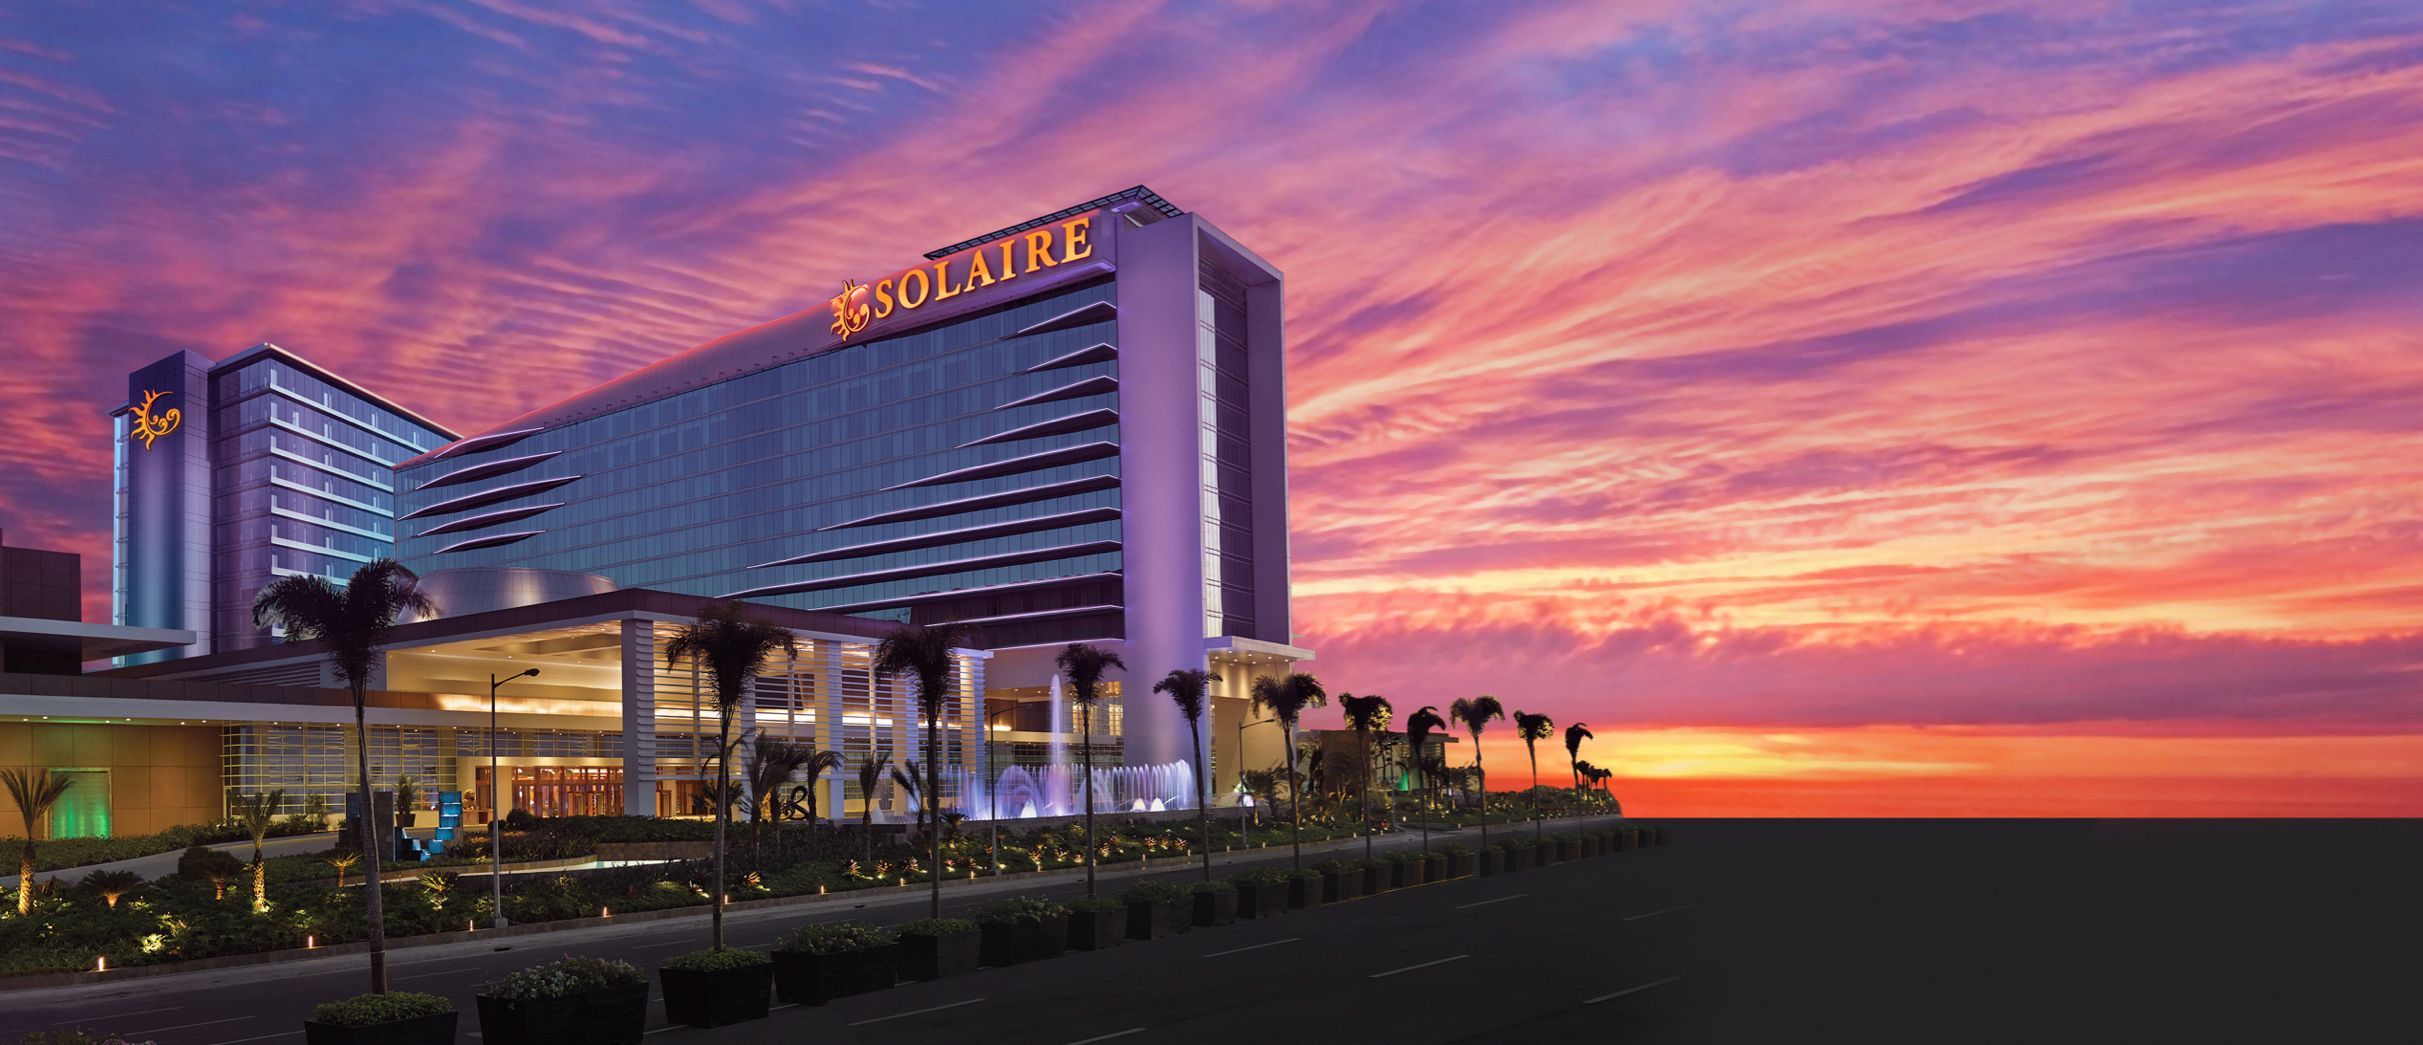 solaire resort and casino mission and vision